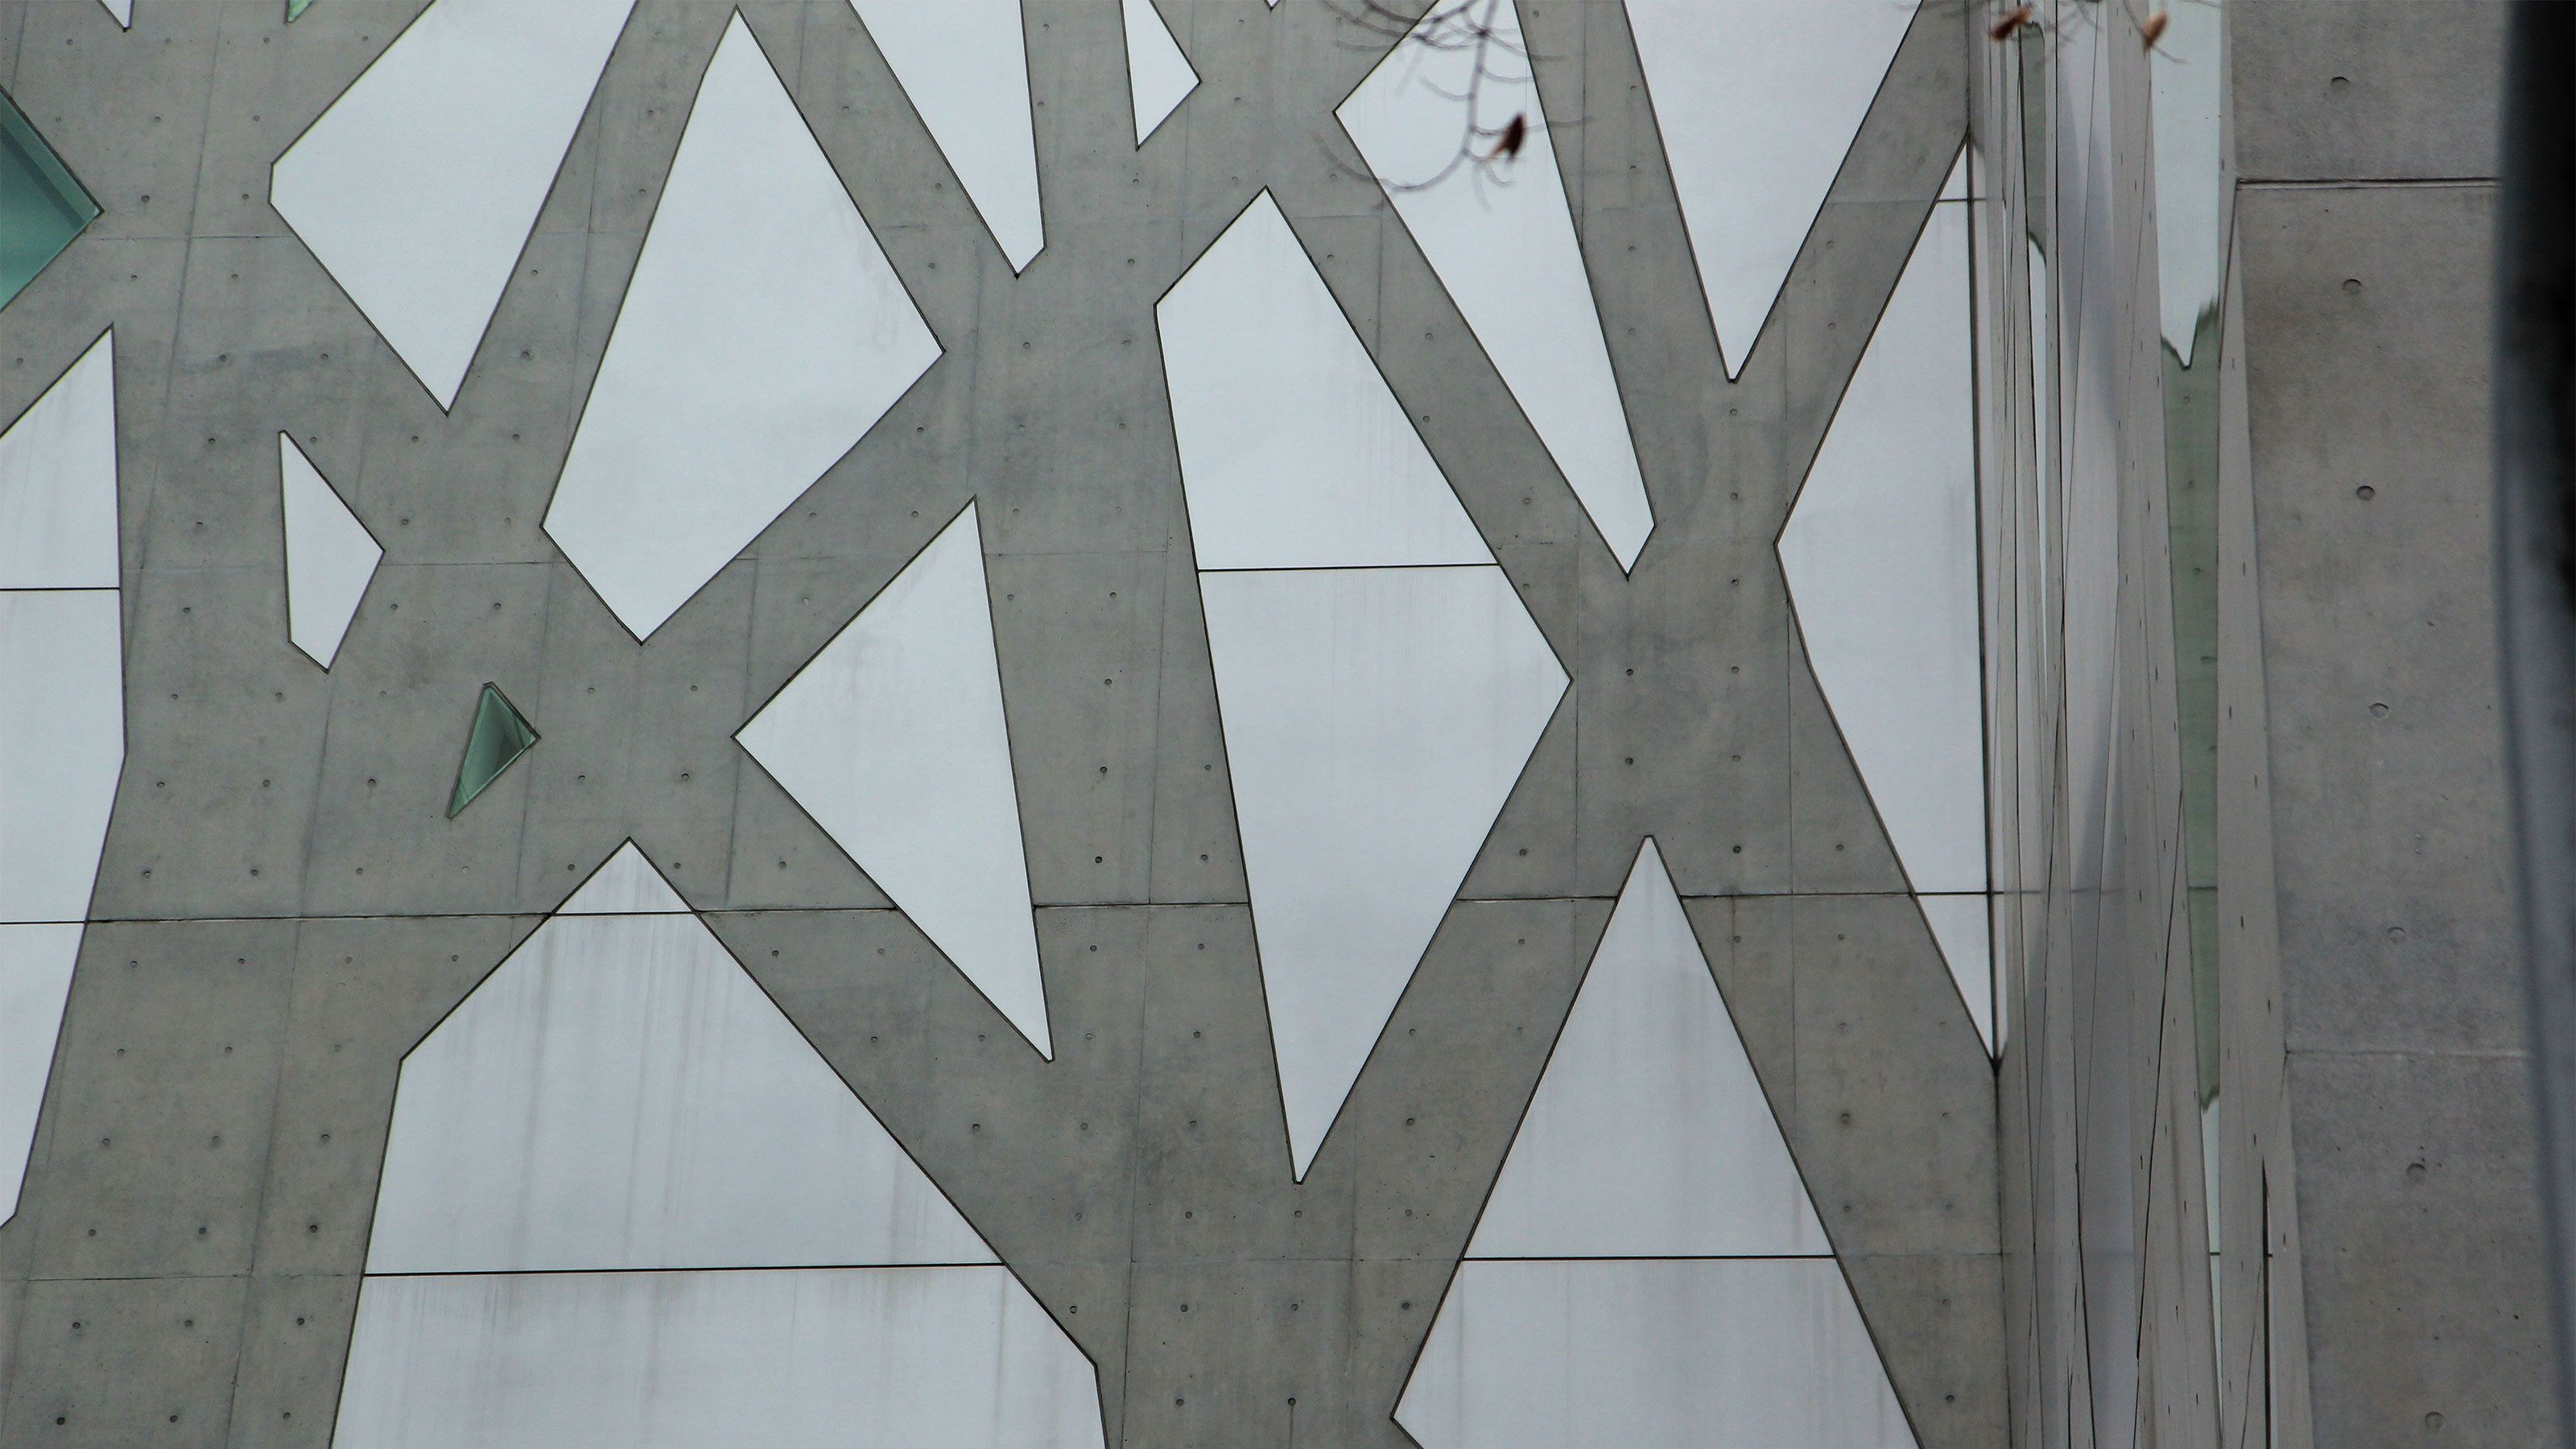 Detail of a geometric design on the side of a skyscraper in Tokyo